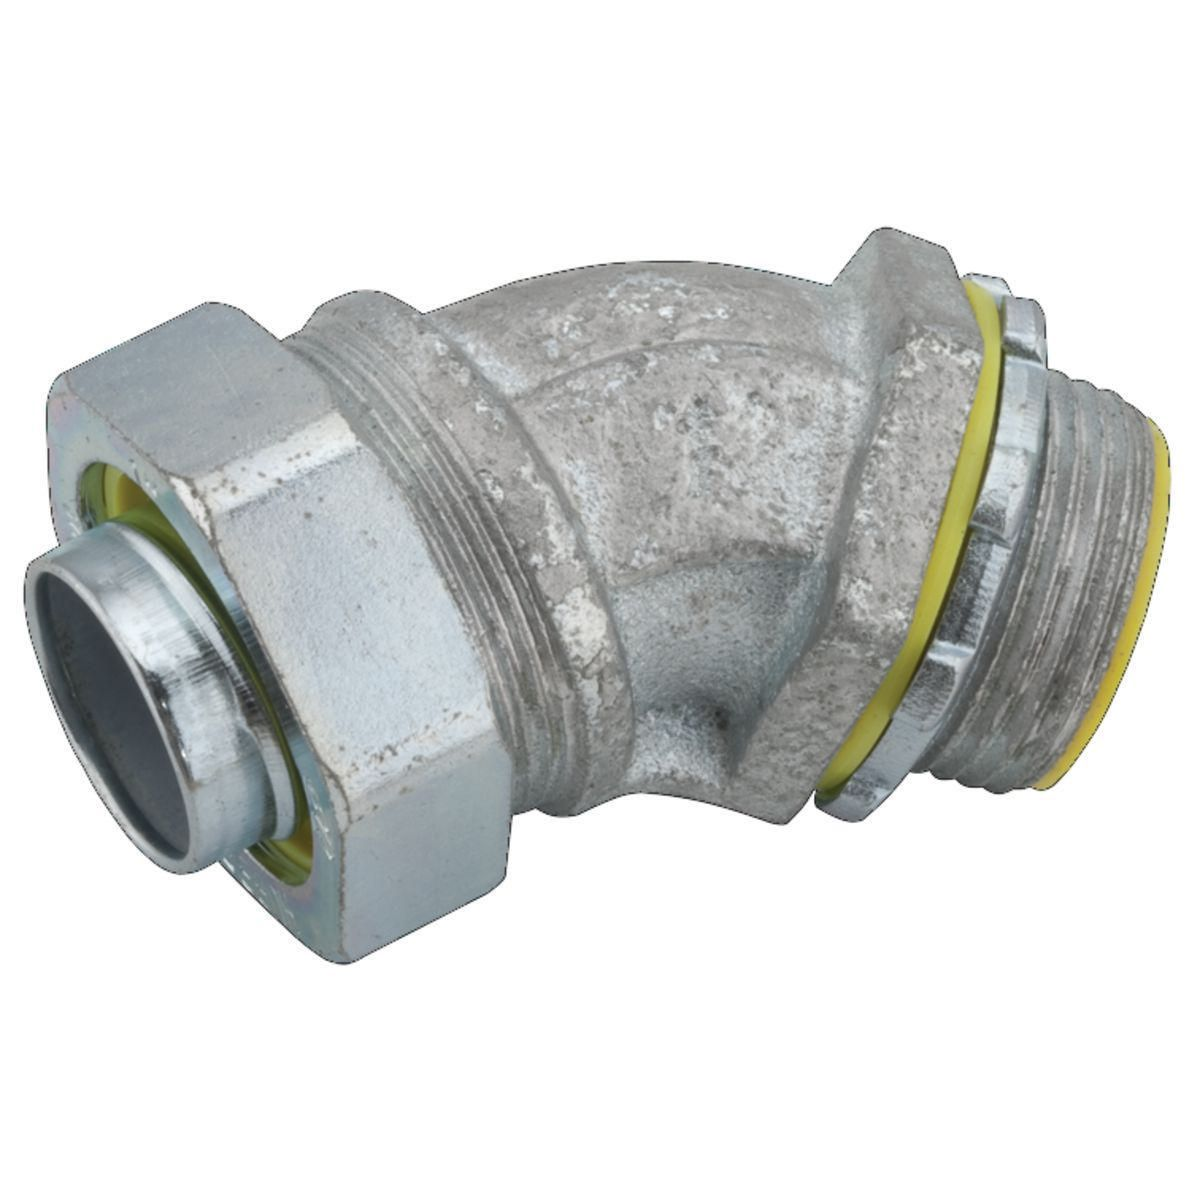 LIQUIDTIGHT CONN 45 INSUL 2 IN STEEL